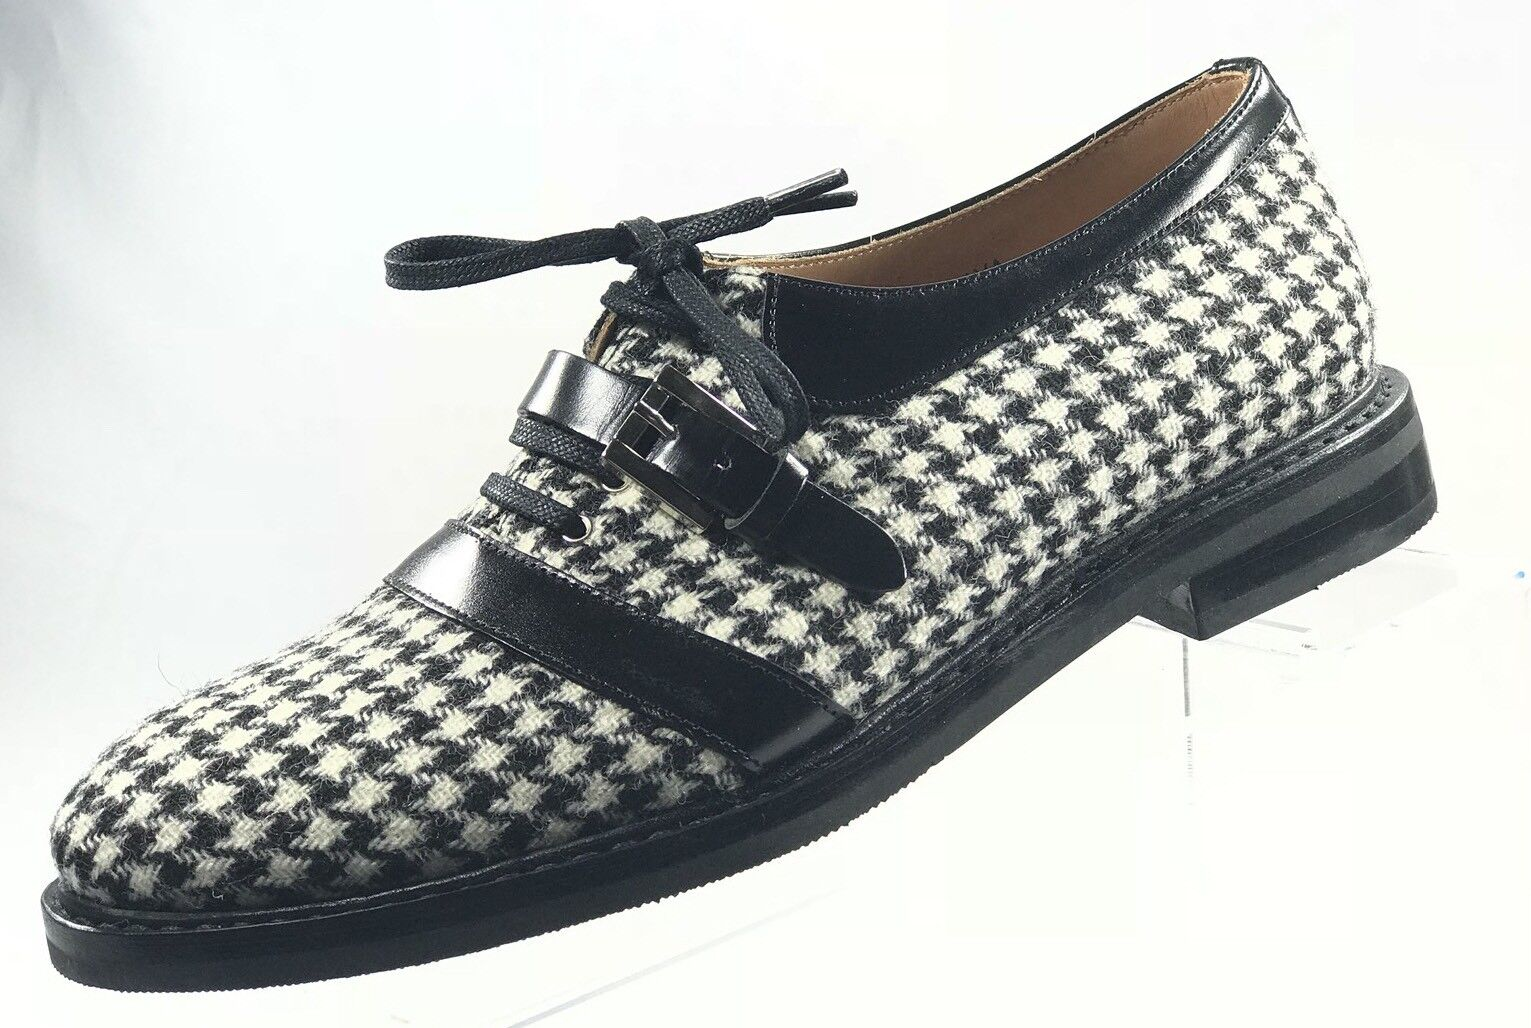 ATELIERS HESCHUNG Malva Tweed Houndstooth 8 Damens Loafers Größe US 8 Houndstooth / UK 6 51fd74